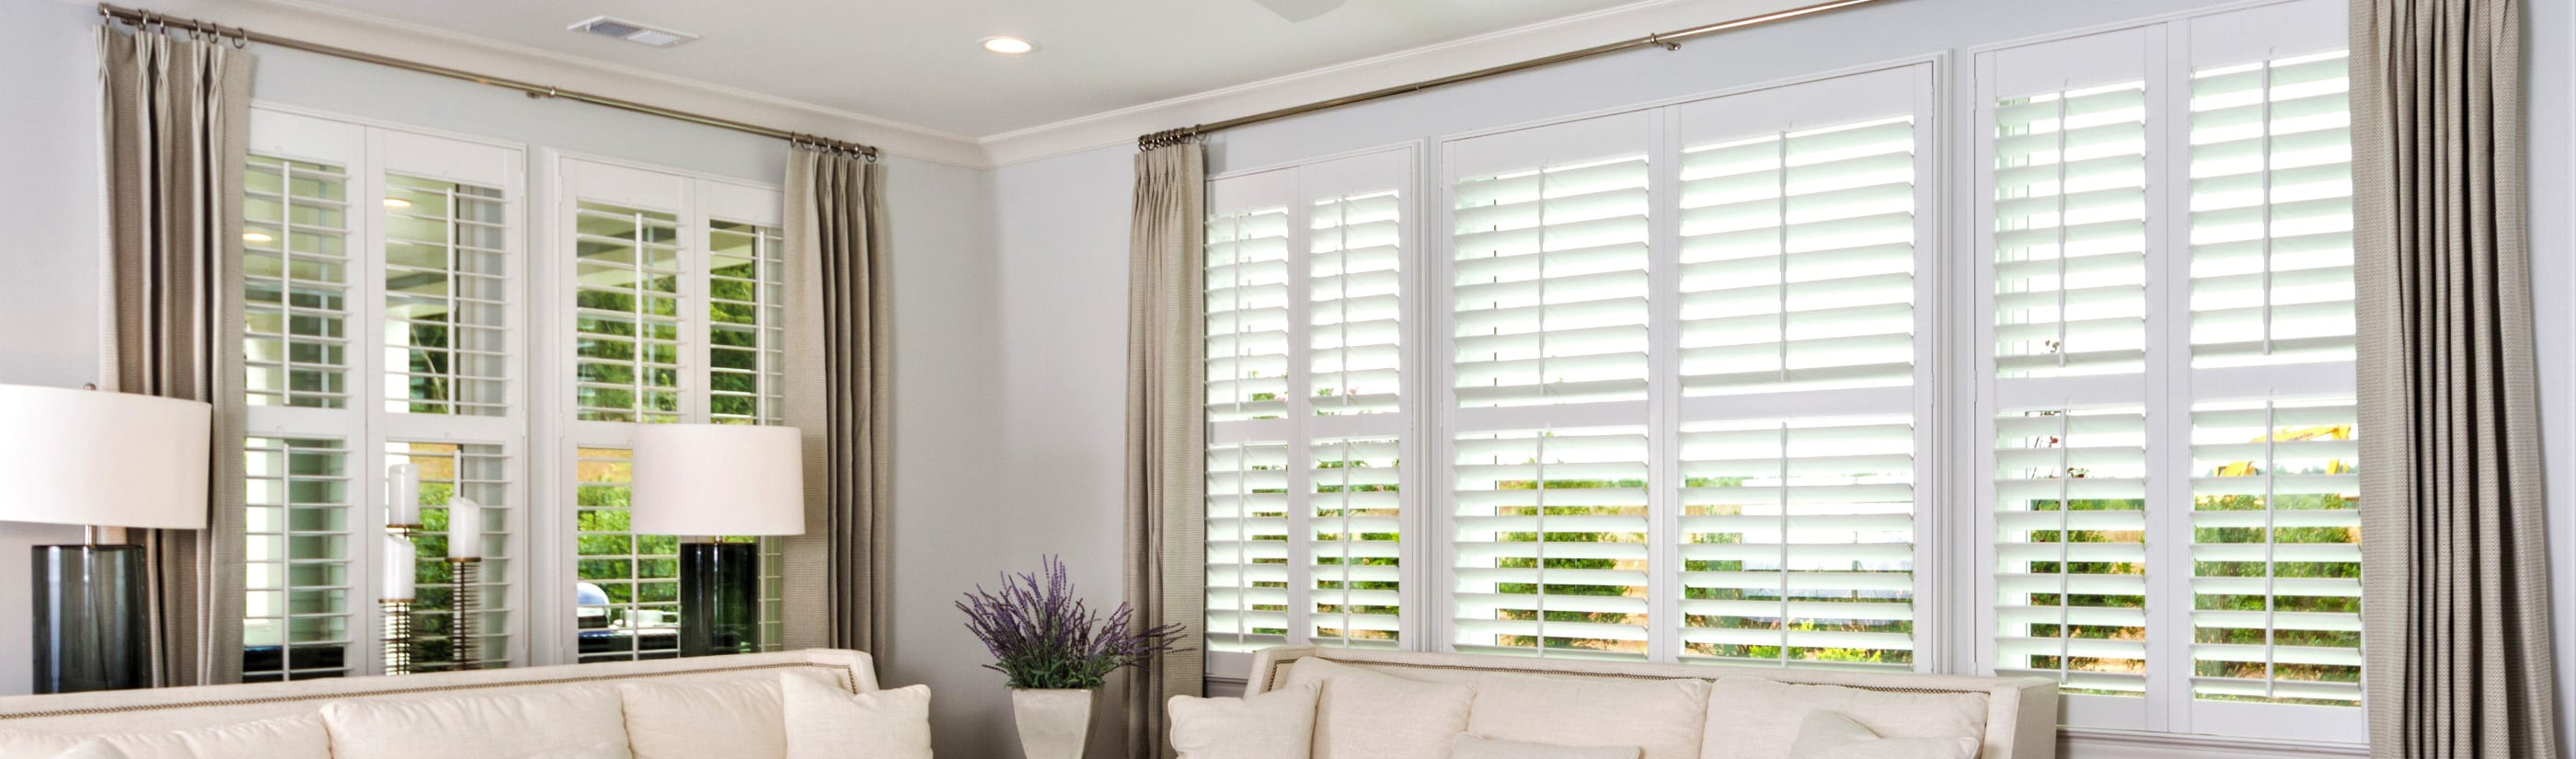 Polywood Shutters Paints In Atlanta